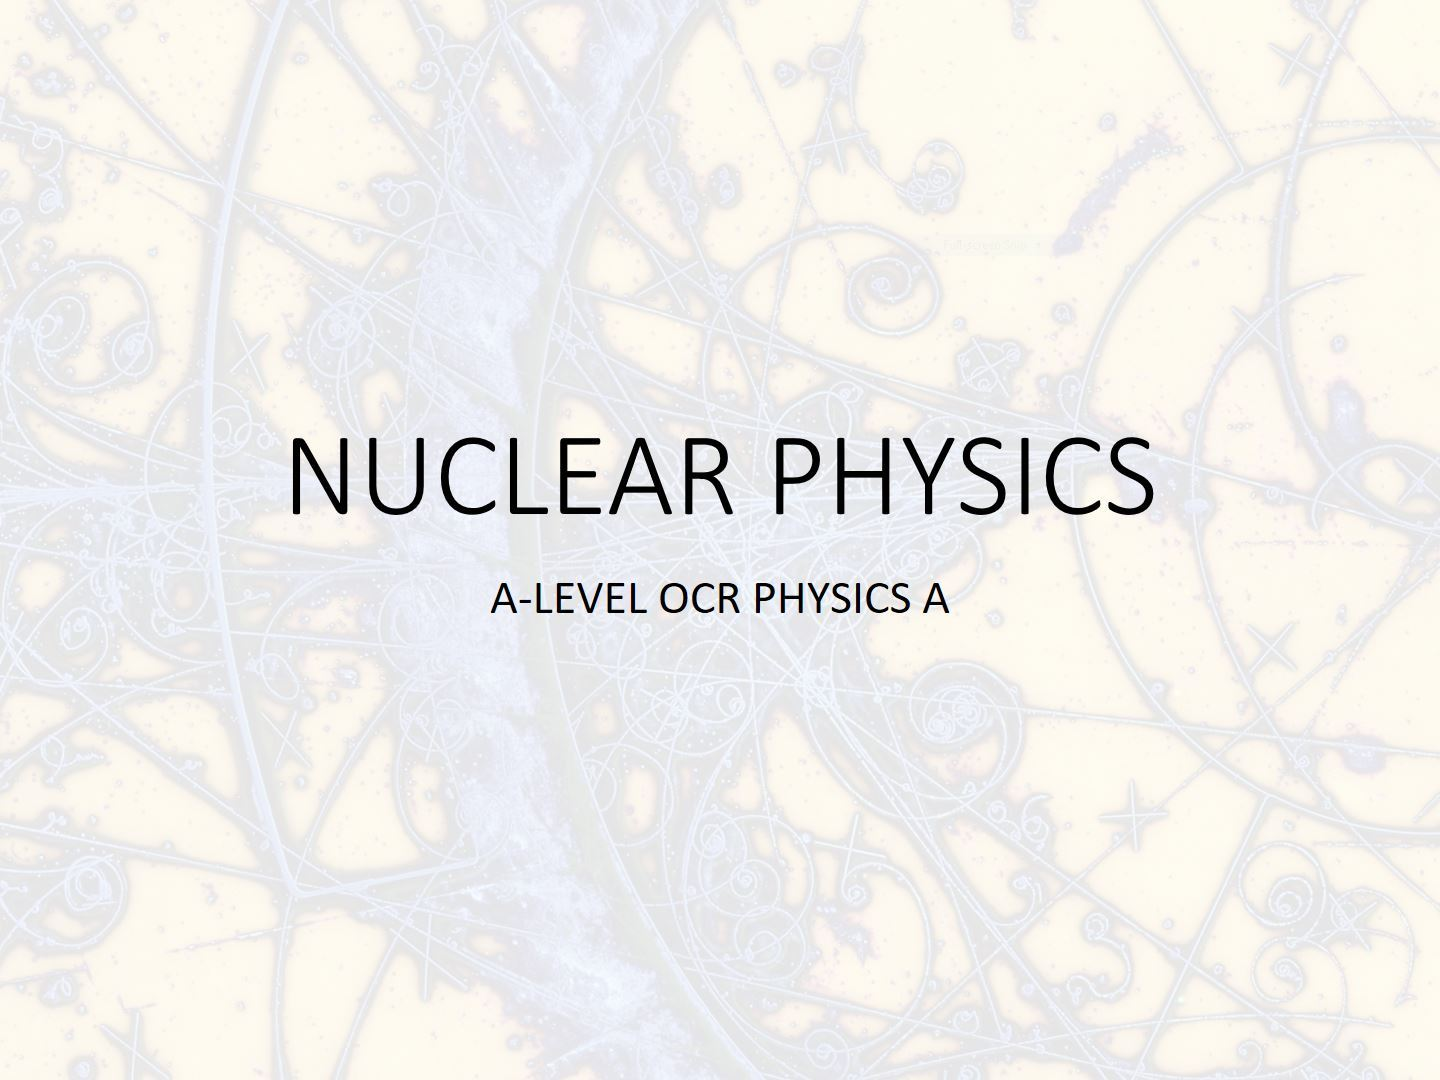 Nuclear Physics for A-level OCR Physics A